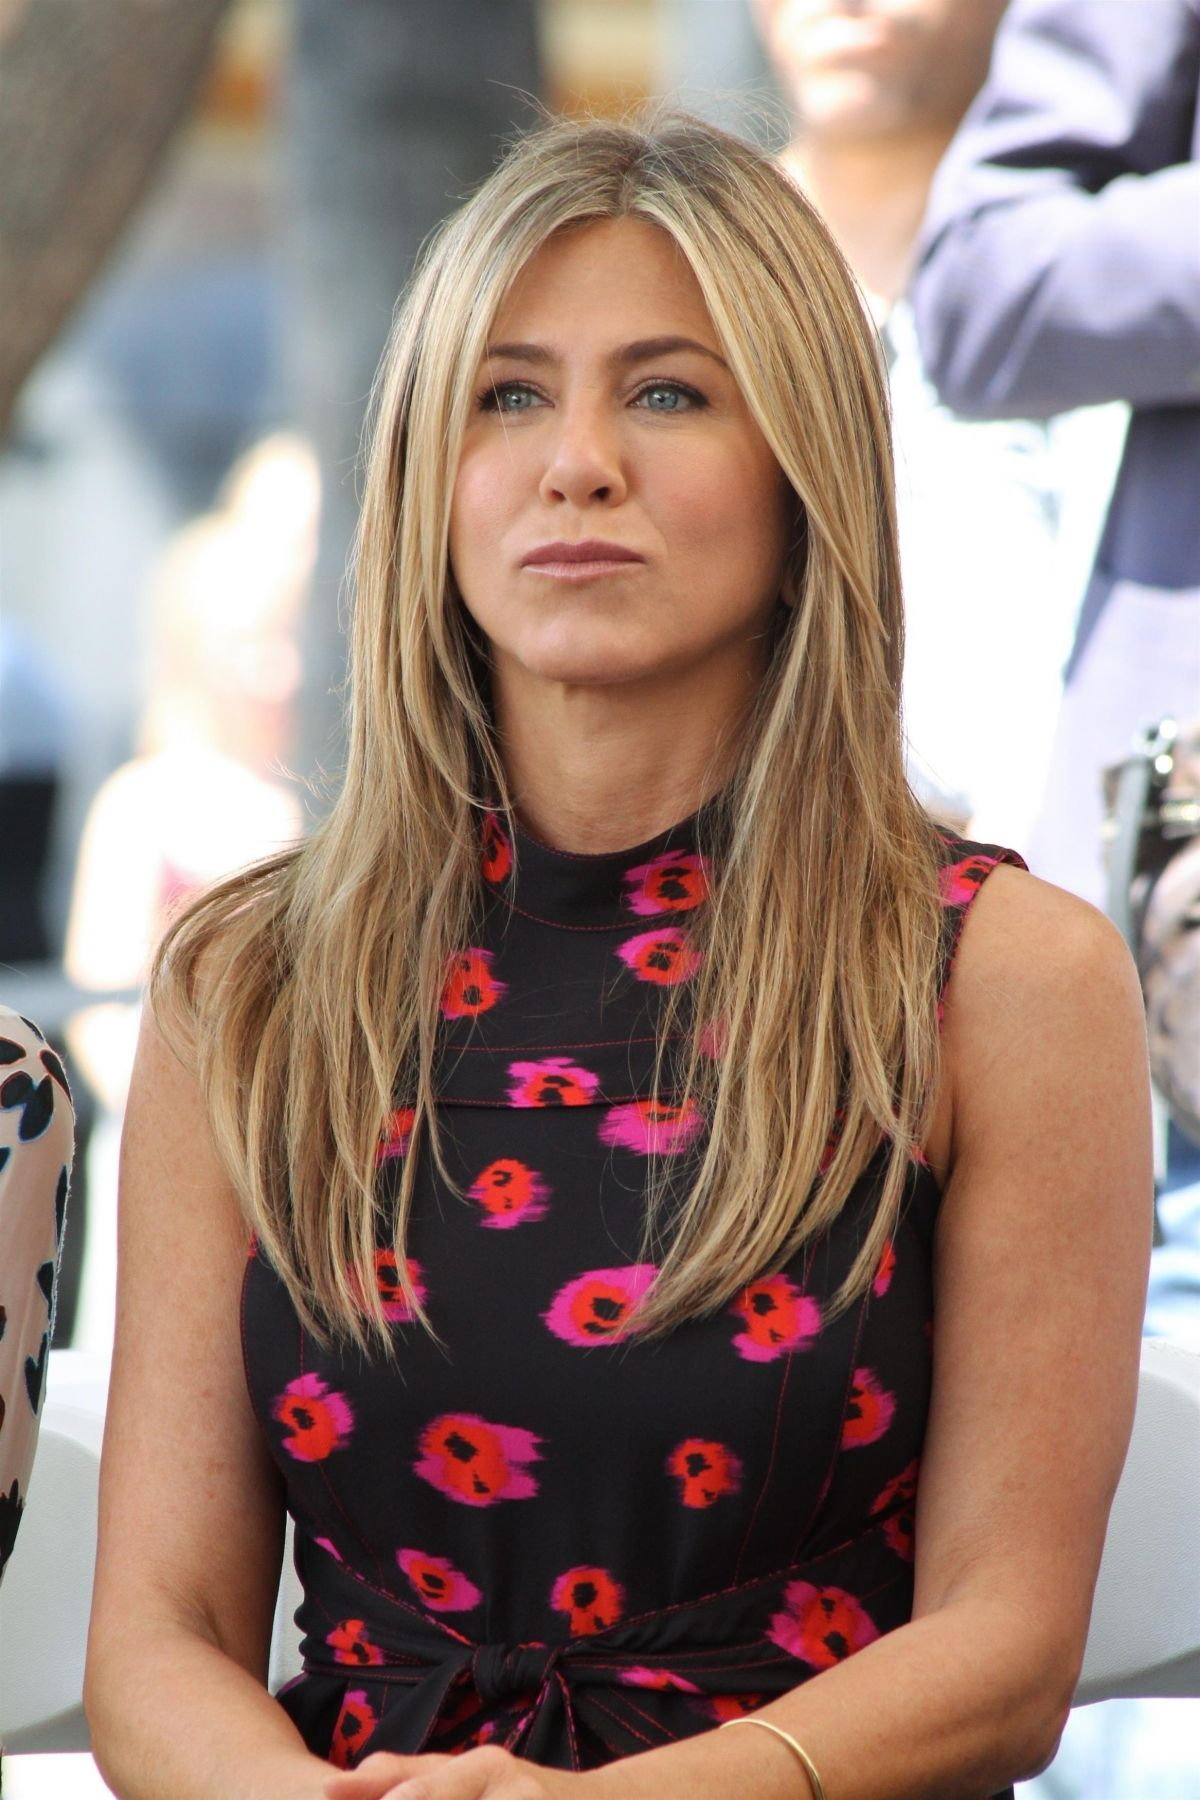 Jennifer Aniston At Jason Bateman's Hollywood Star Ceremony in Hollywood   jennifer-aniston-at-jason-bateman-s-hollywood-star-ceremony-in-hollywood_6